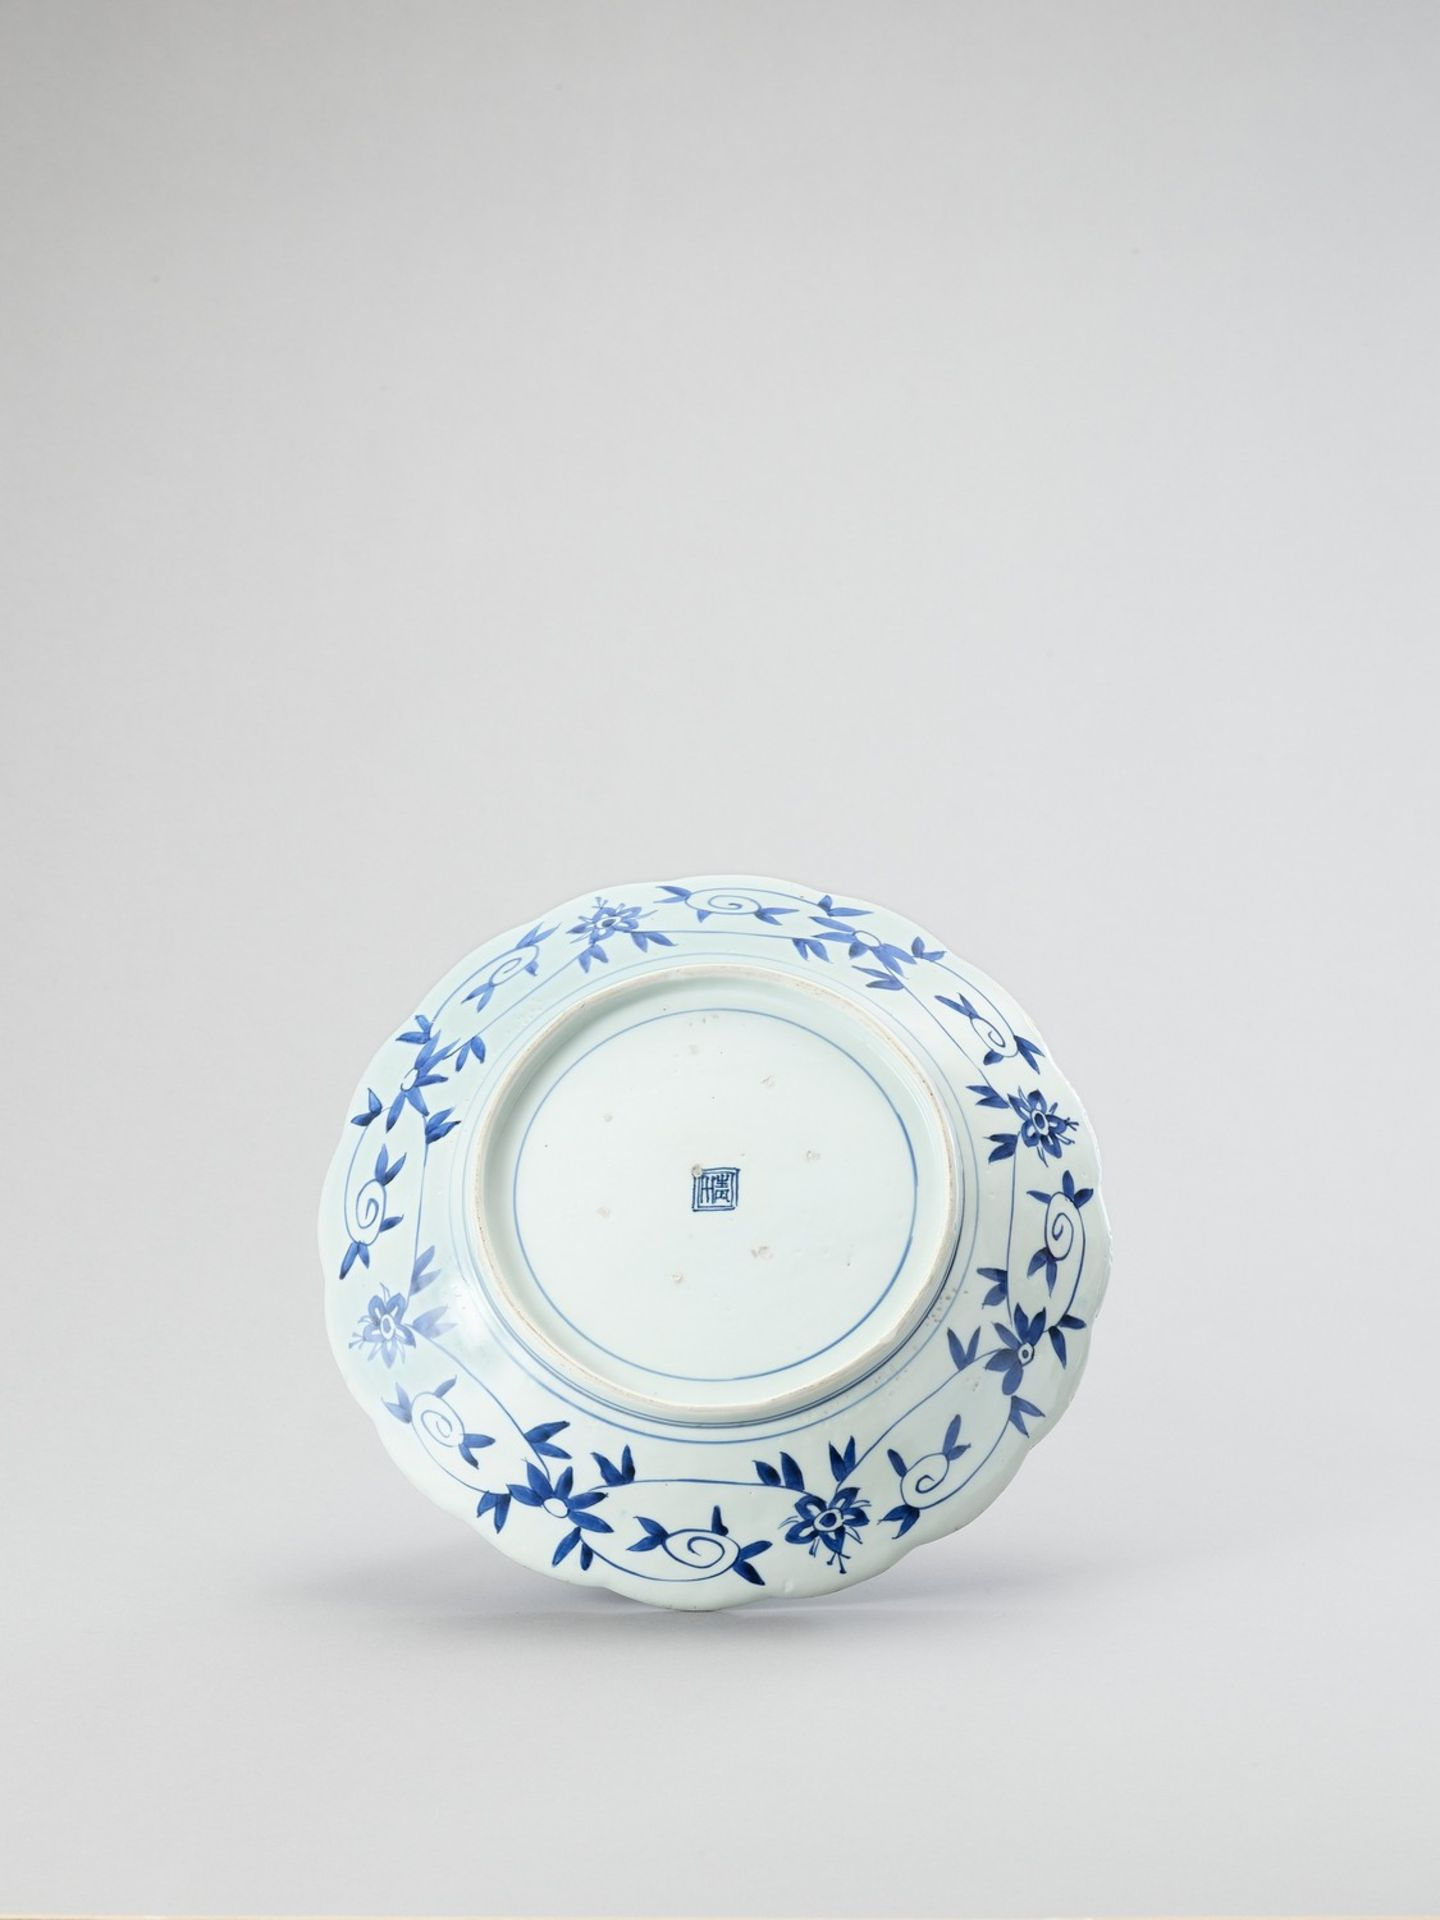 A LOBED ARITA PORCELAIN CHARGER - Image 3 of 4